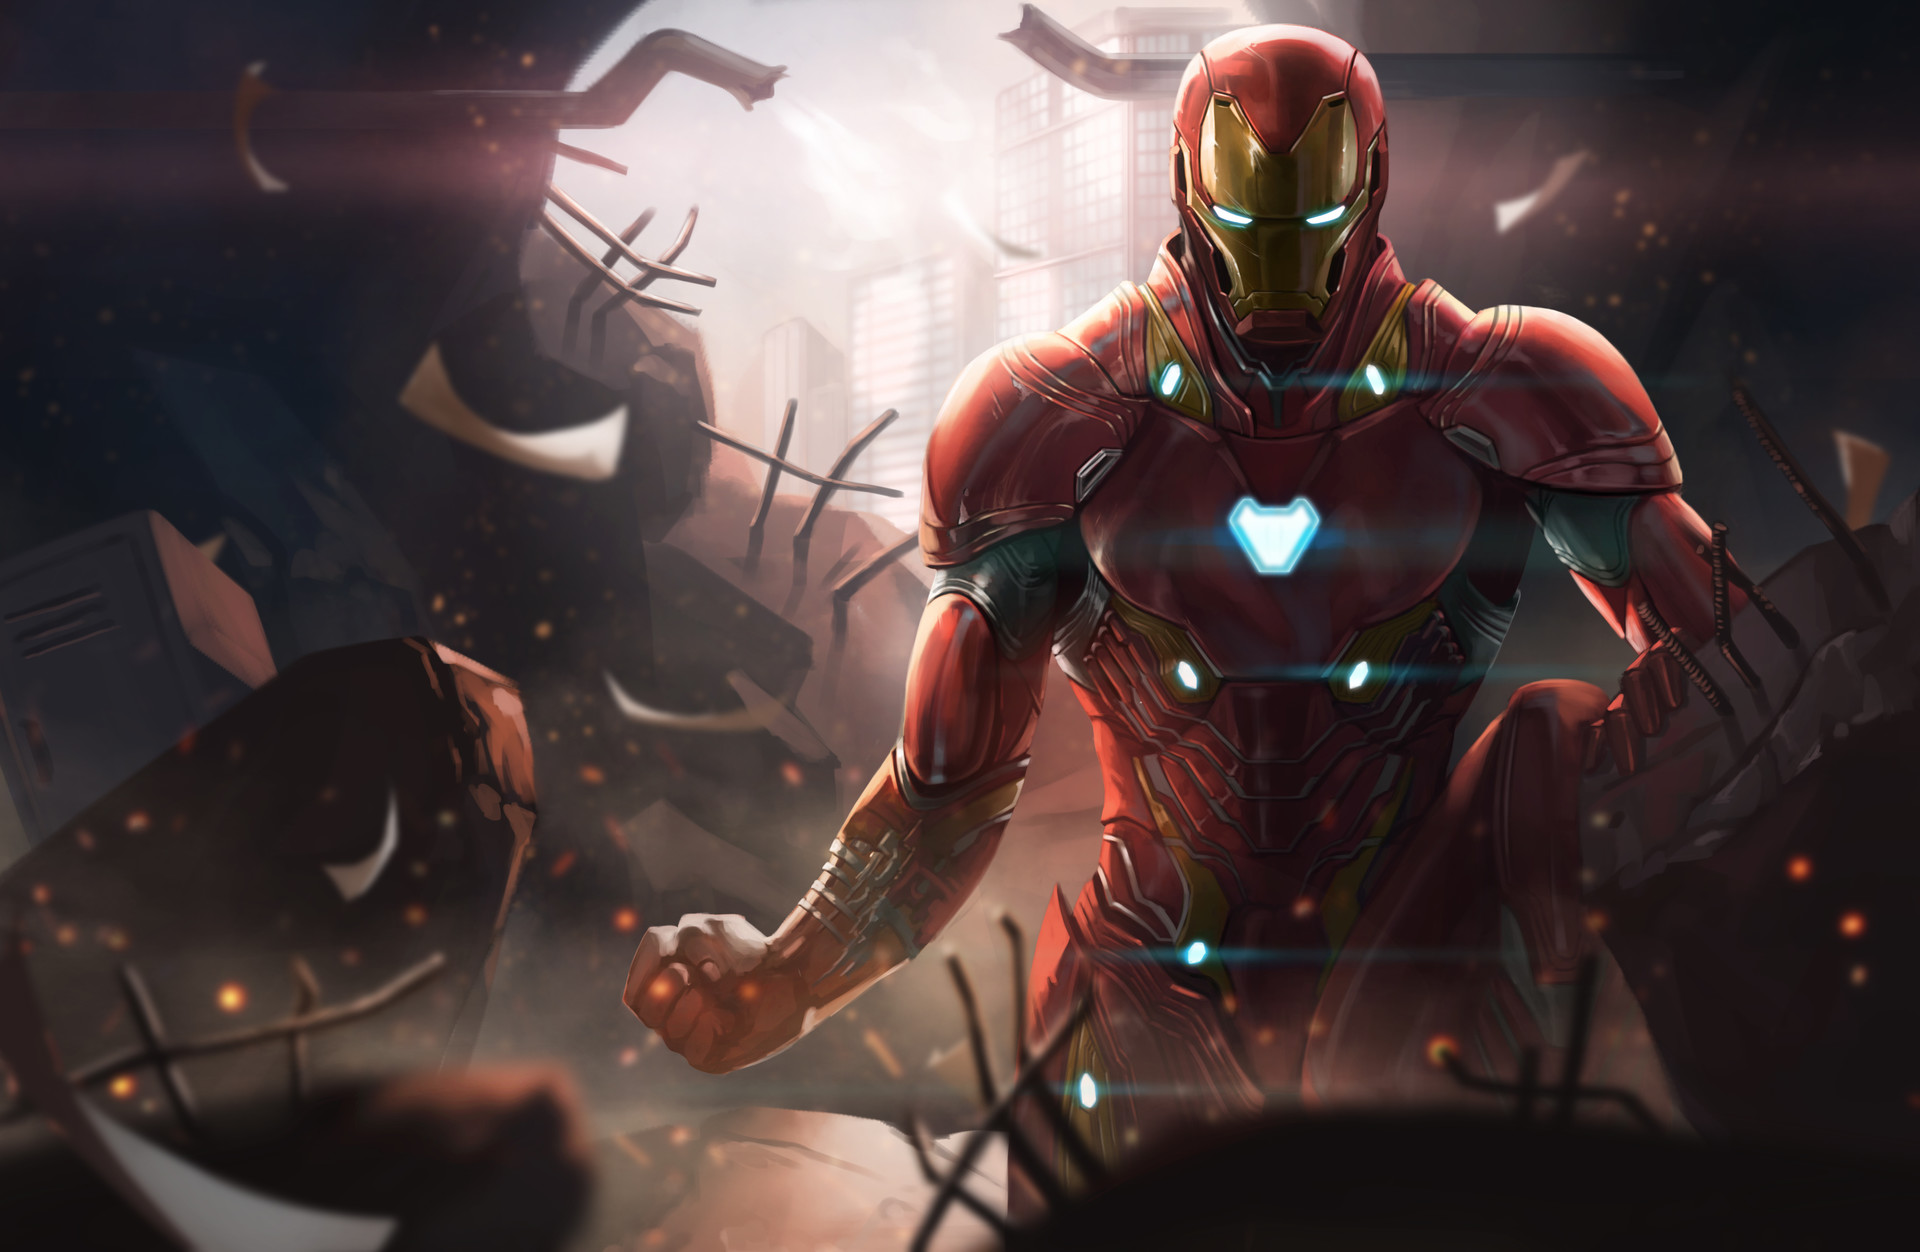 35 Iron Man Hd Wallpapers For Desktop: 1920x1080 Iron Man Avengers Infinity War Digital Art